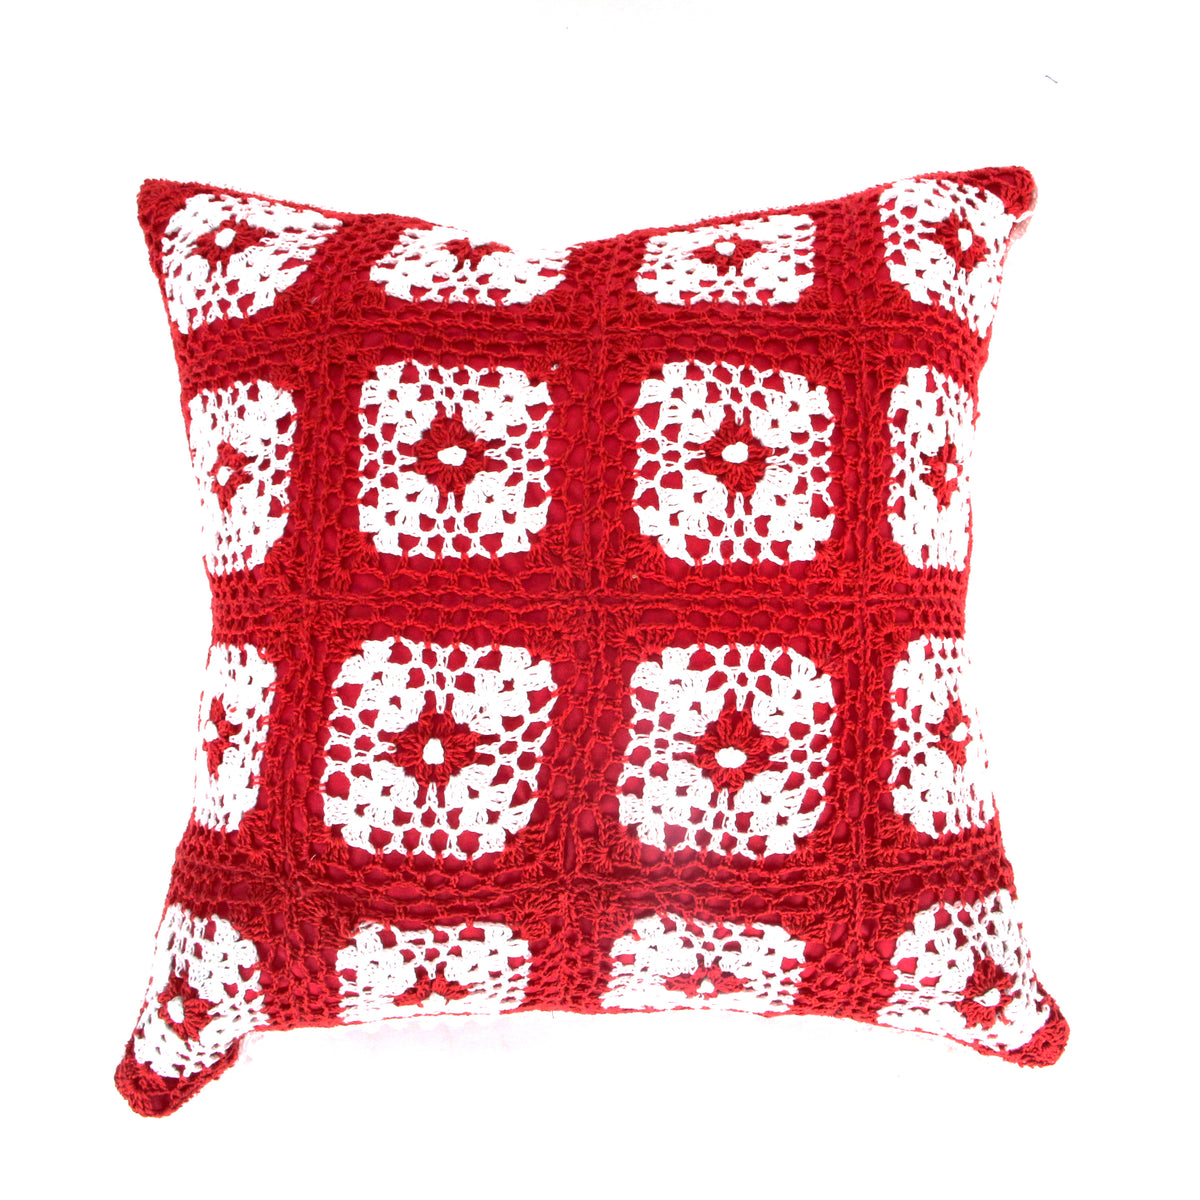 Hug Crochet Polkadot Cushion Cover - Red